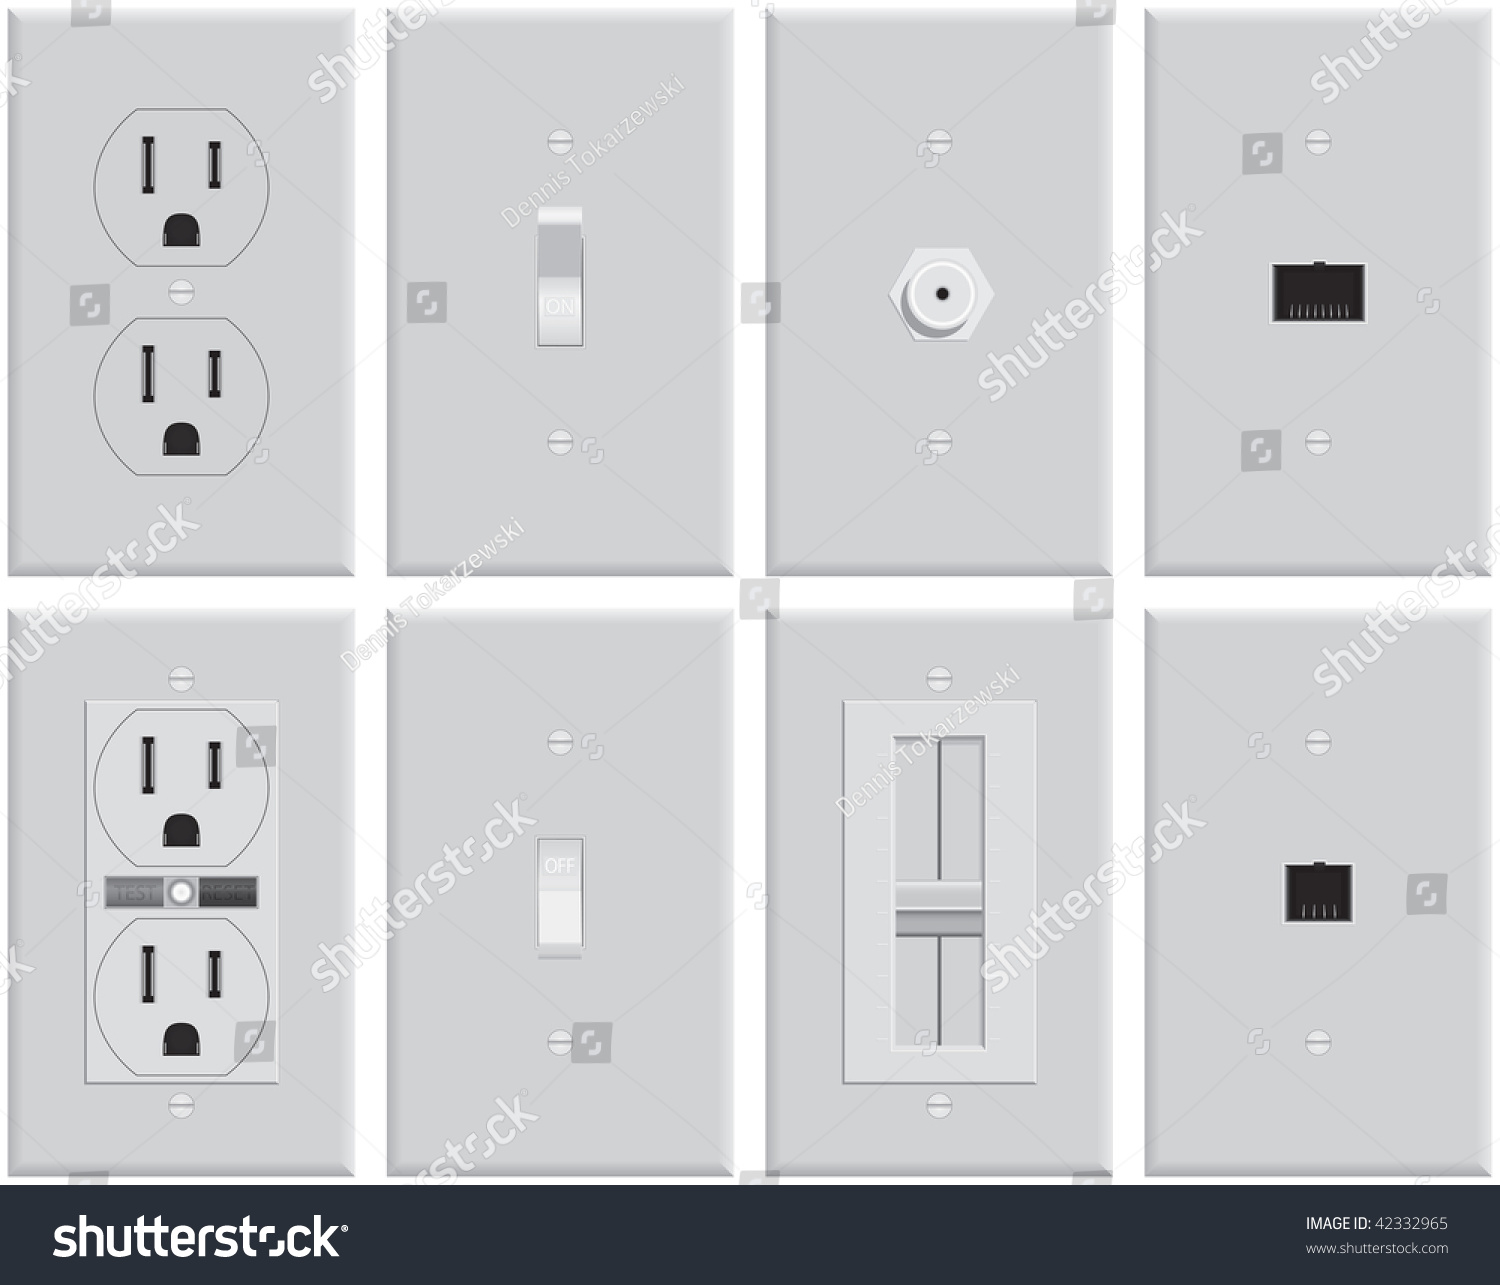 Wall Plug Plates Wall Mounted Us Electrical Plates Standard Stock Vector 42332965